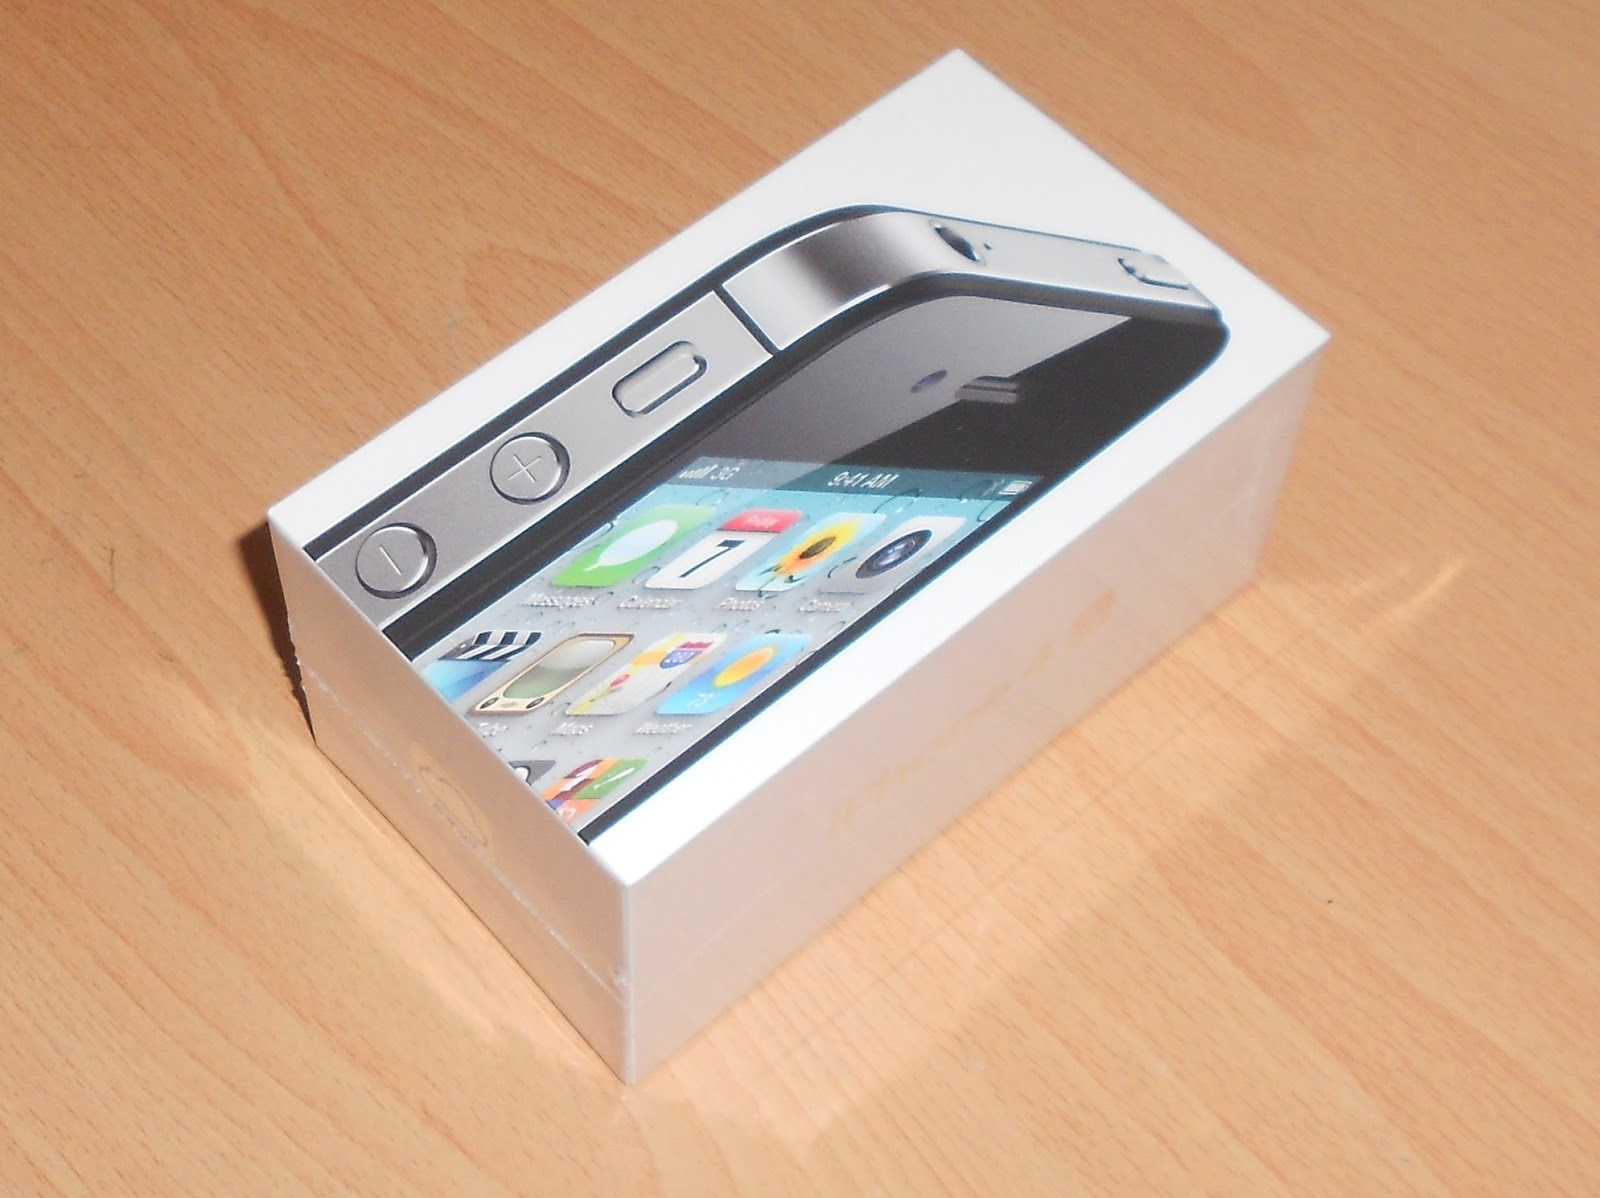 what comes with iphone 4s in box